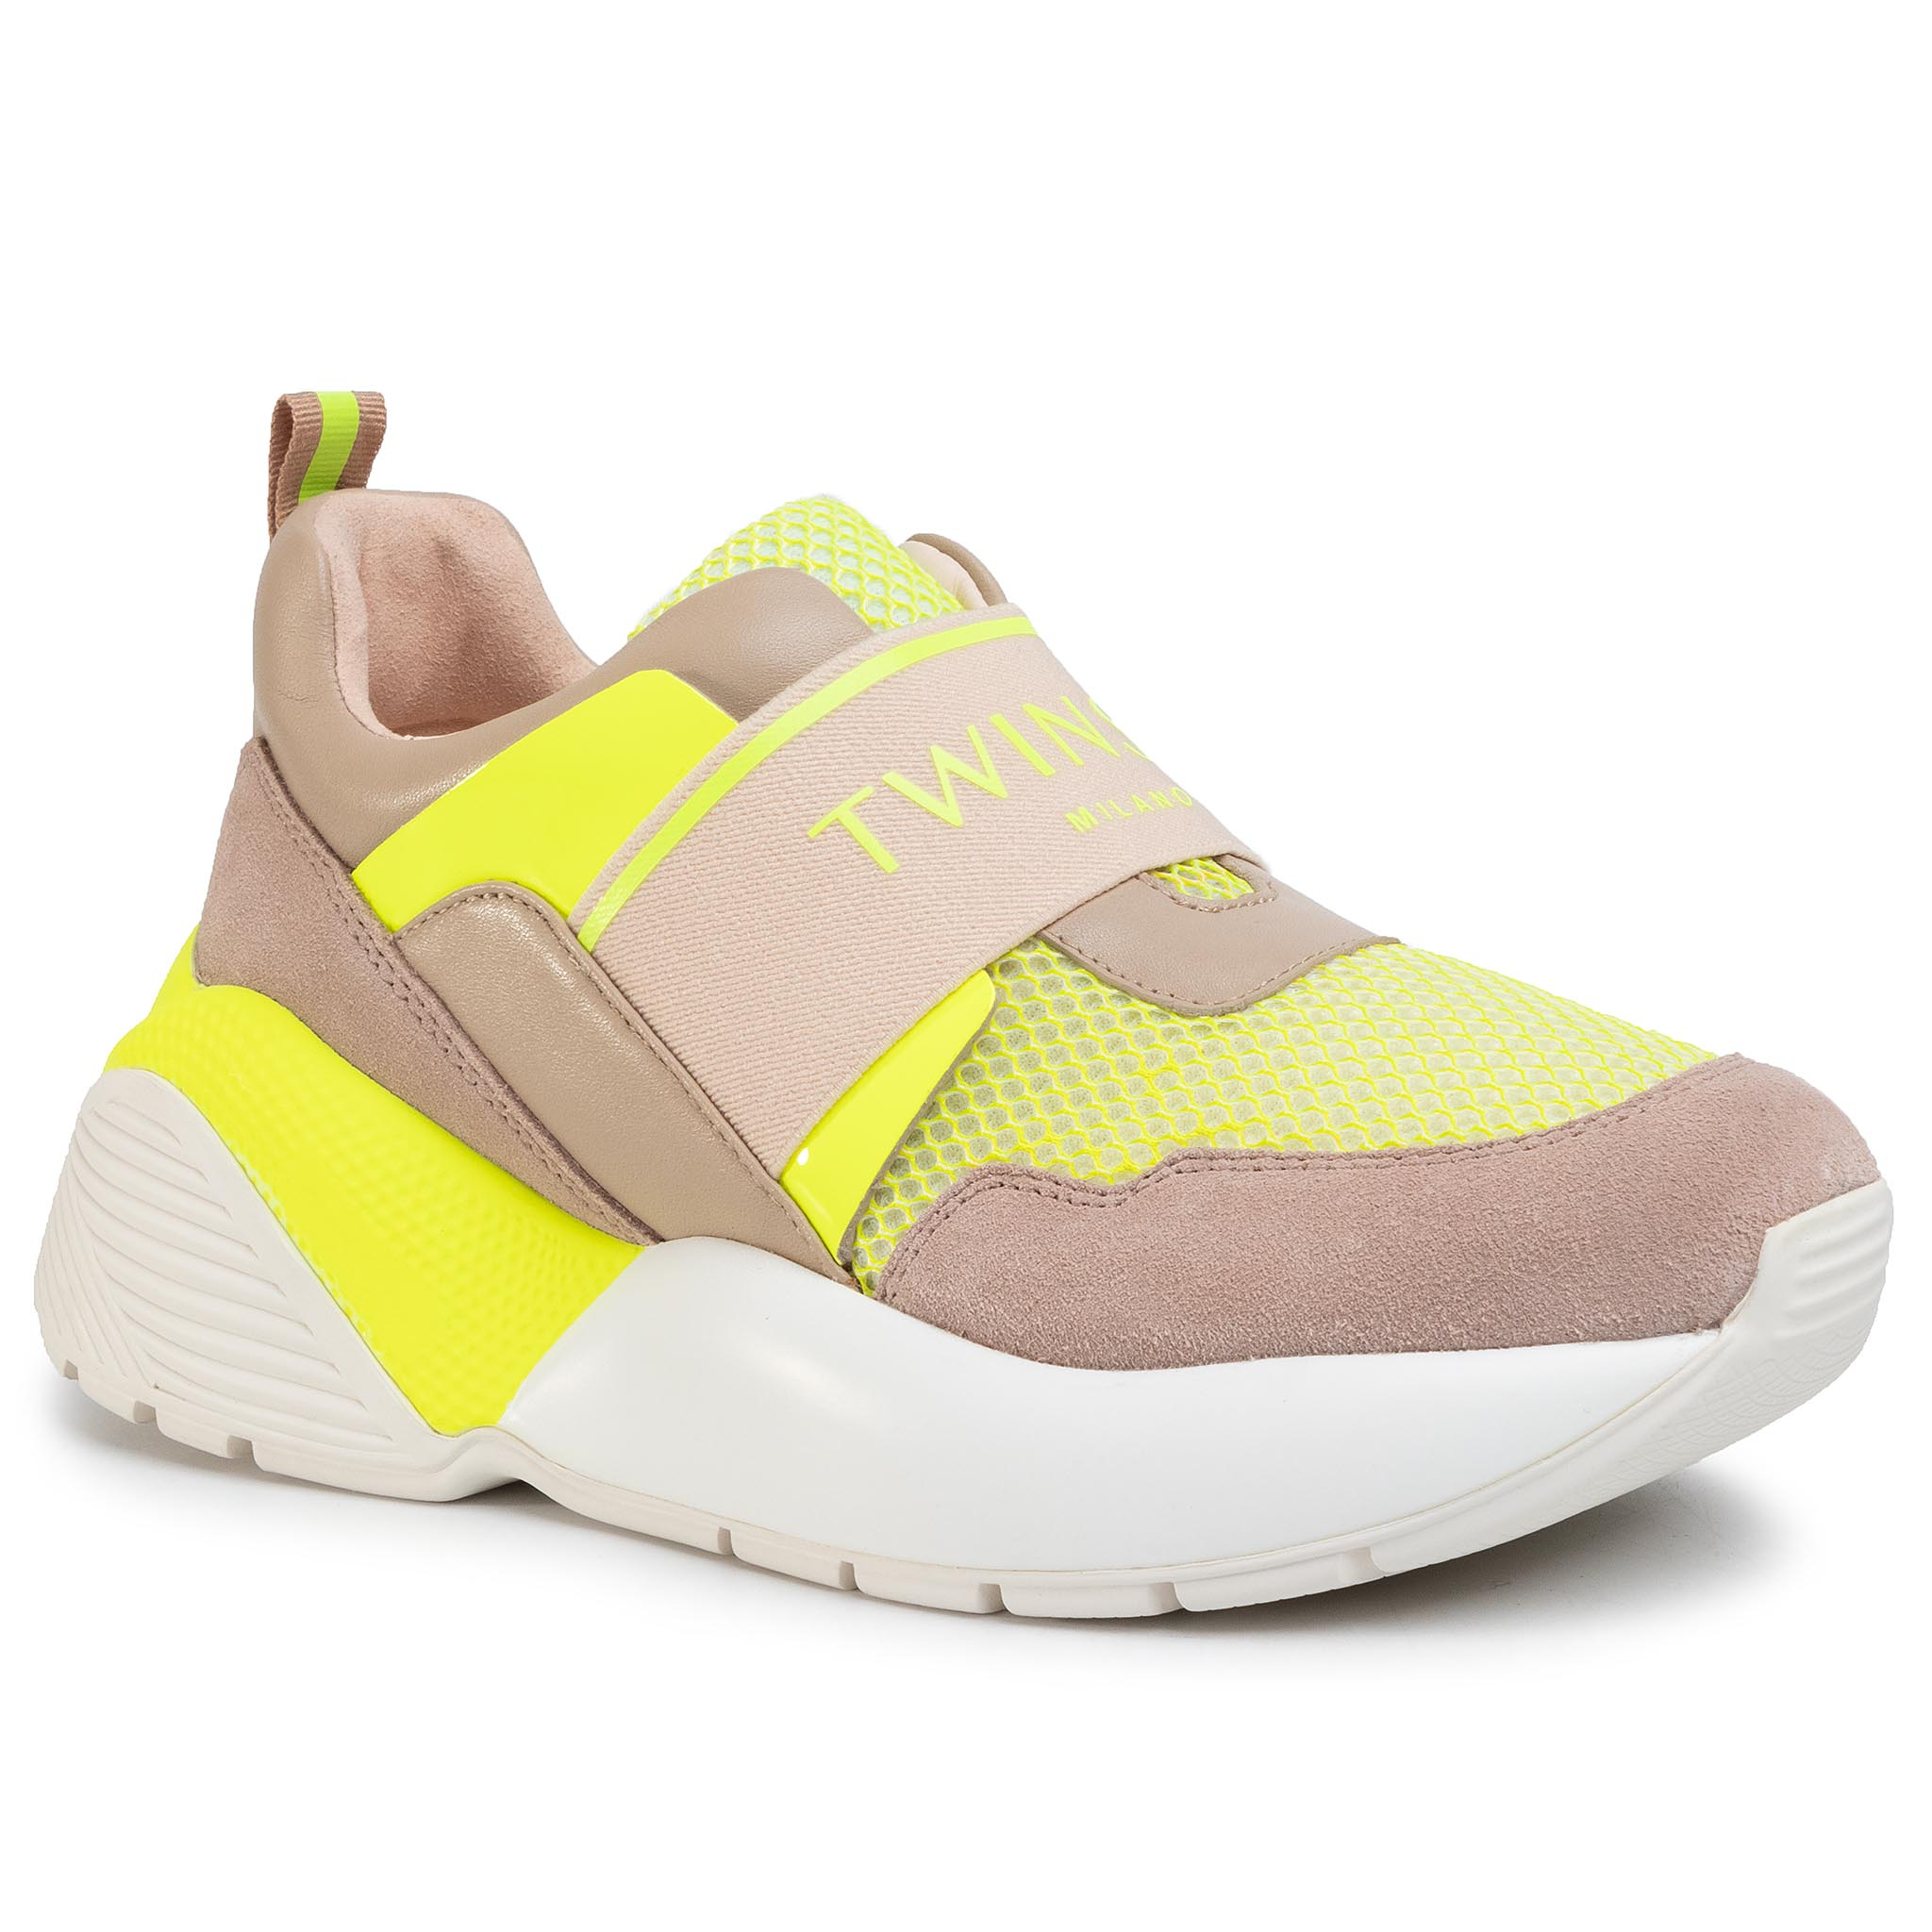 Sneakers TWINSET - Running 201TCP152  Bic.Ottico/Gial 04830